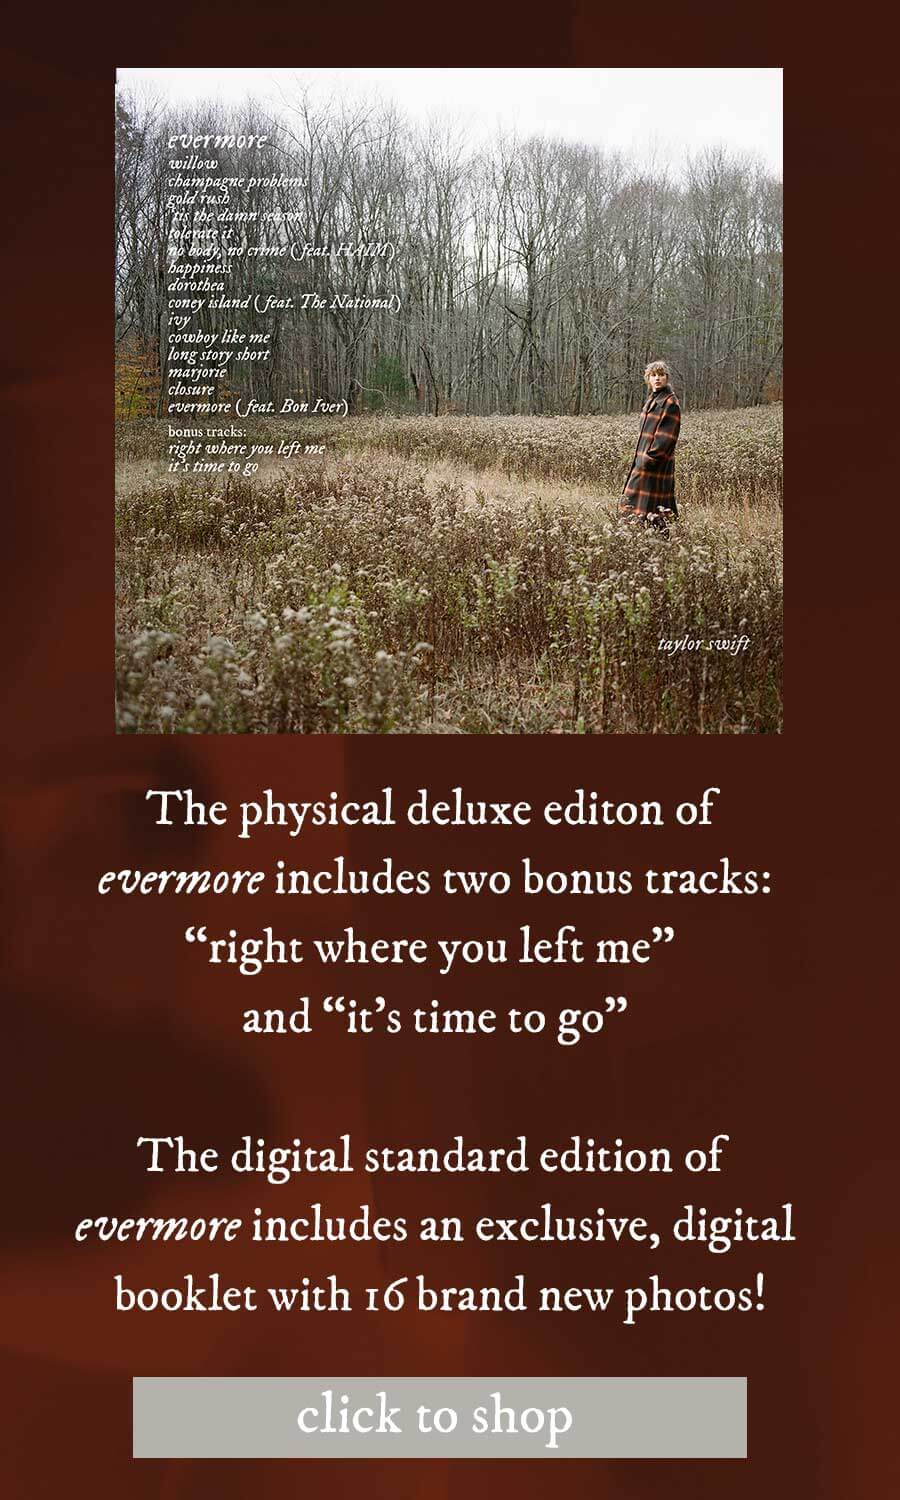 The Digital standard edition of evermore includes an exclusive, digital booklet with 16 brand new photos! evermore: willow; chapagne problems; gold rush; 'tis the damn season; tolerate it; no body, no crime (feat. Haim); happiness; dorthen; coney island (feat. The National); ivy; cowboy like me; long story short; marjorie; closure; evermore (feat. Bon Iver)